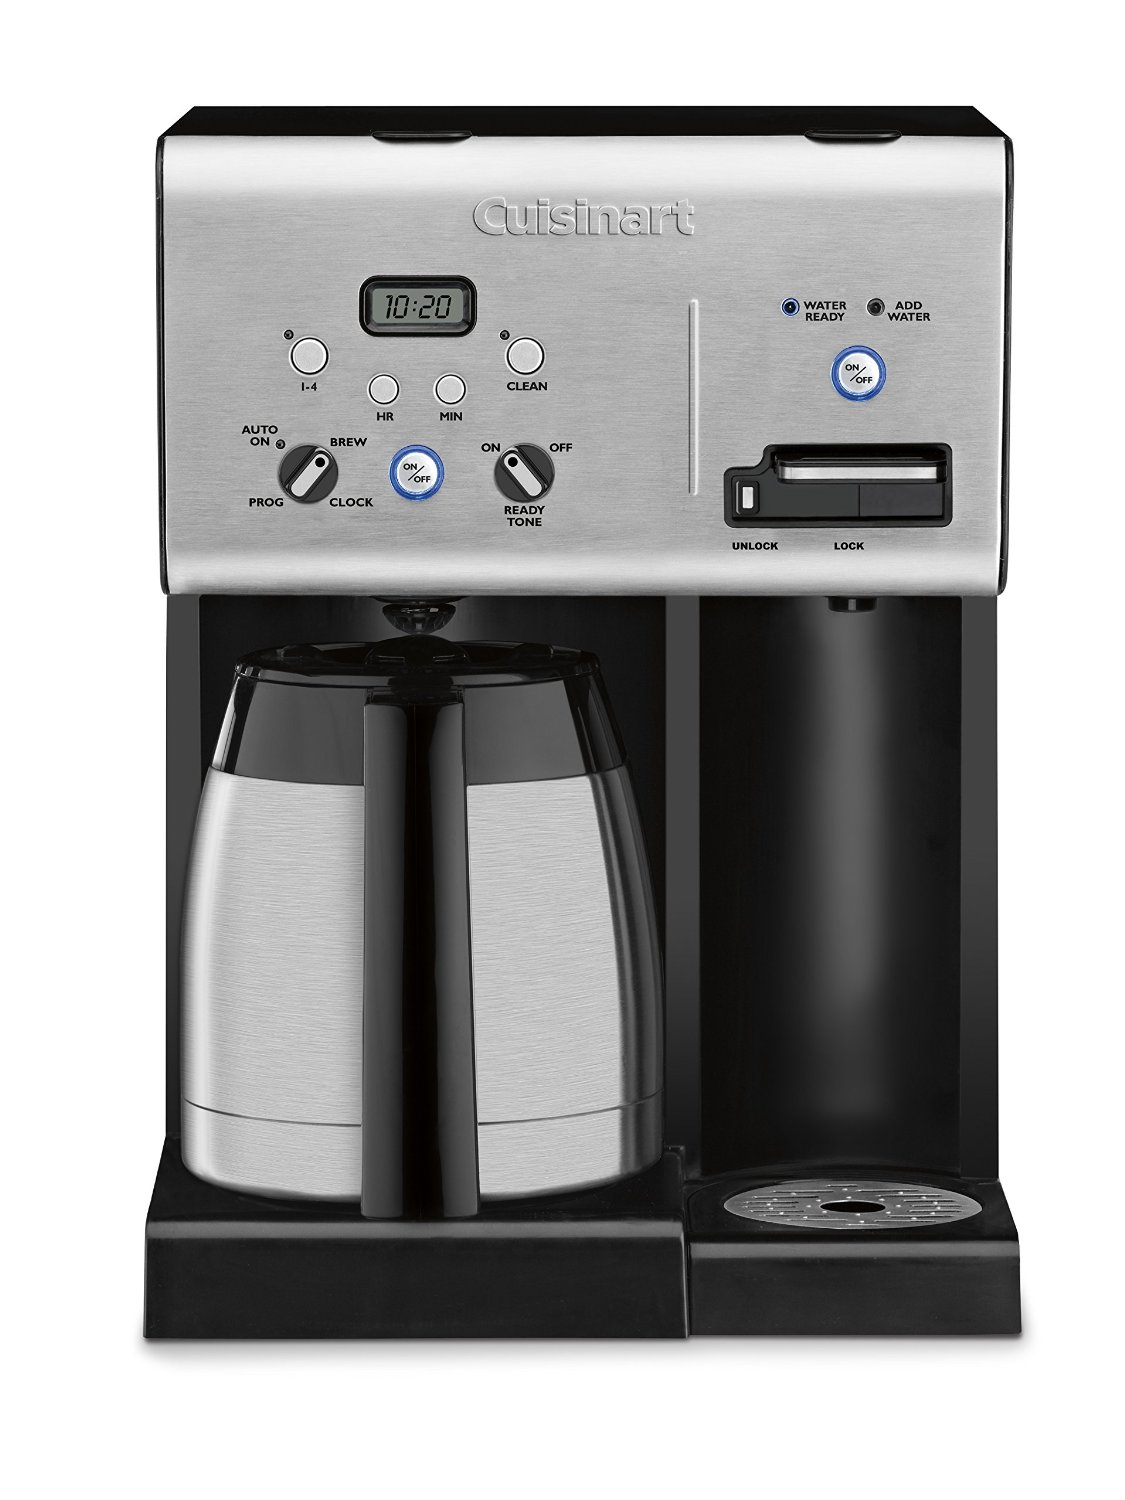 chw 14 Cuisinart  Cup Coffee Maker With Hot Water System